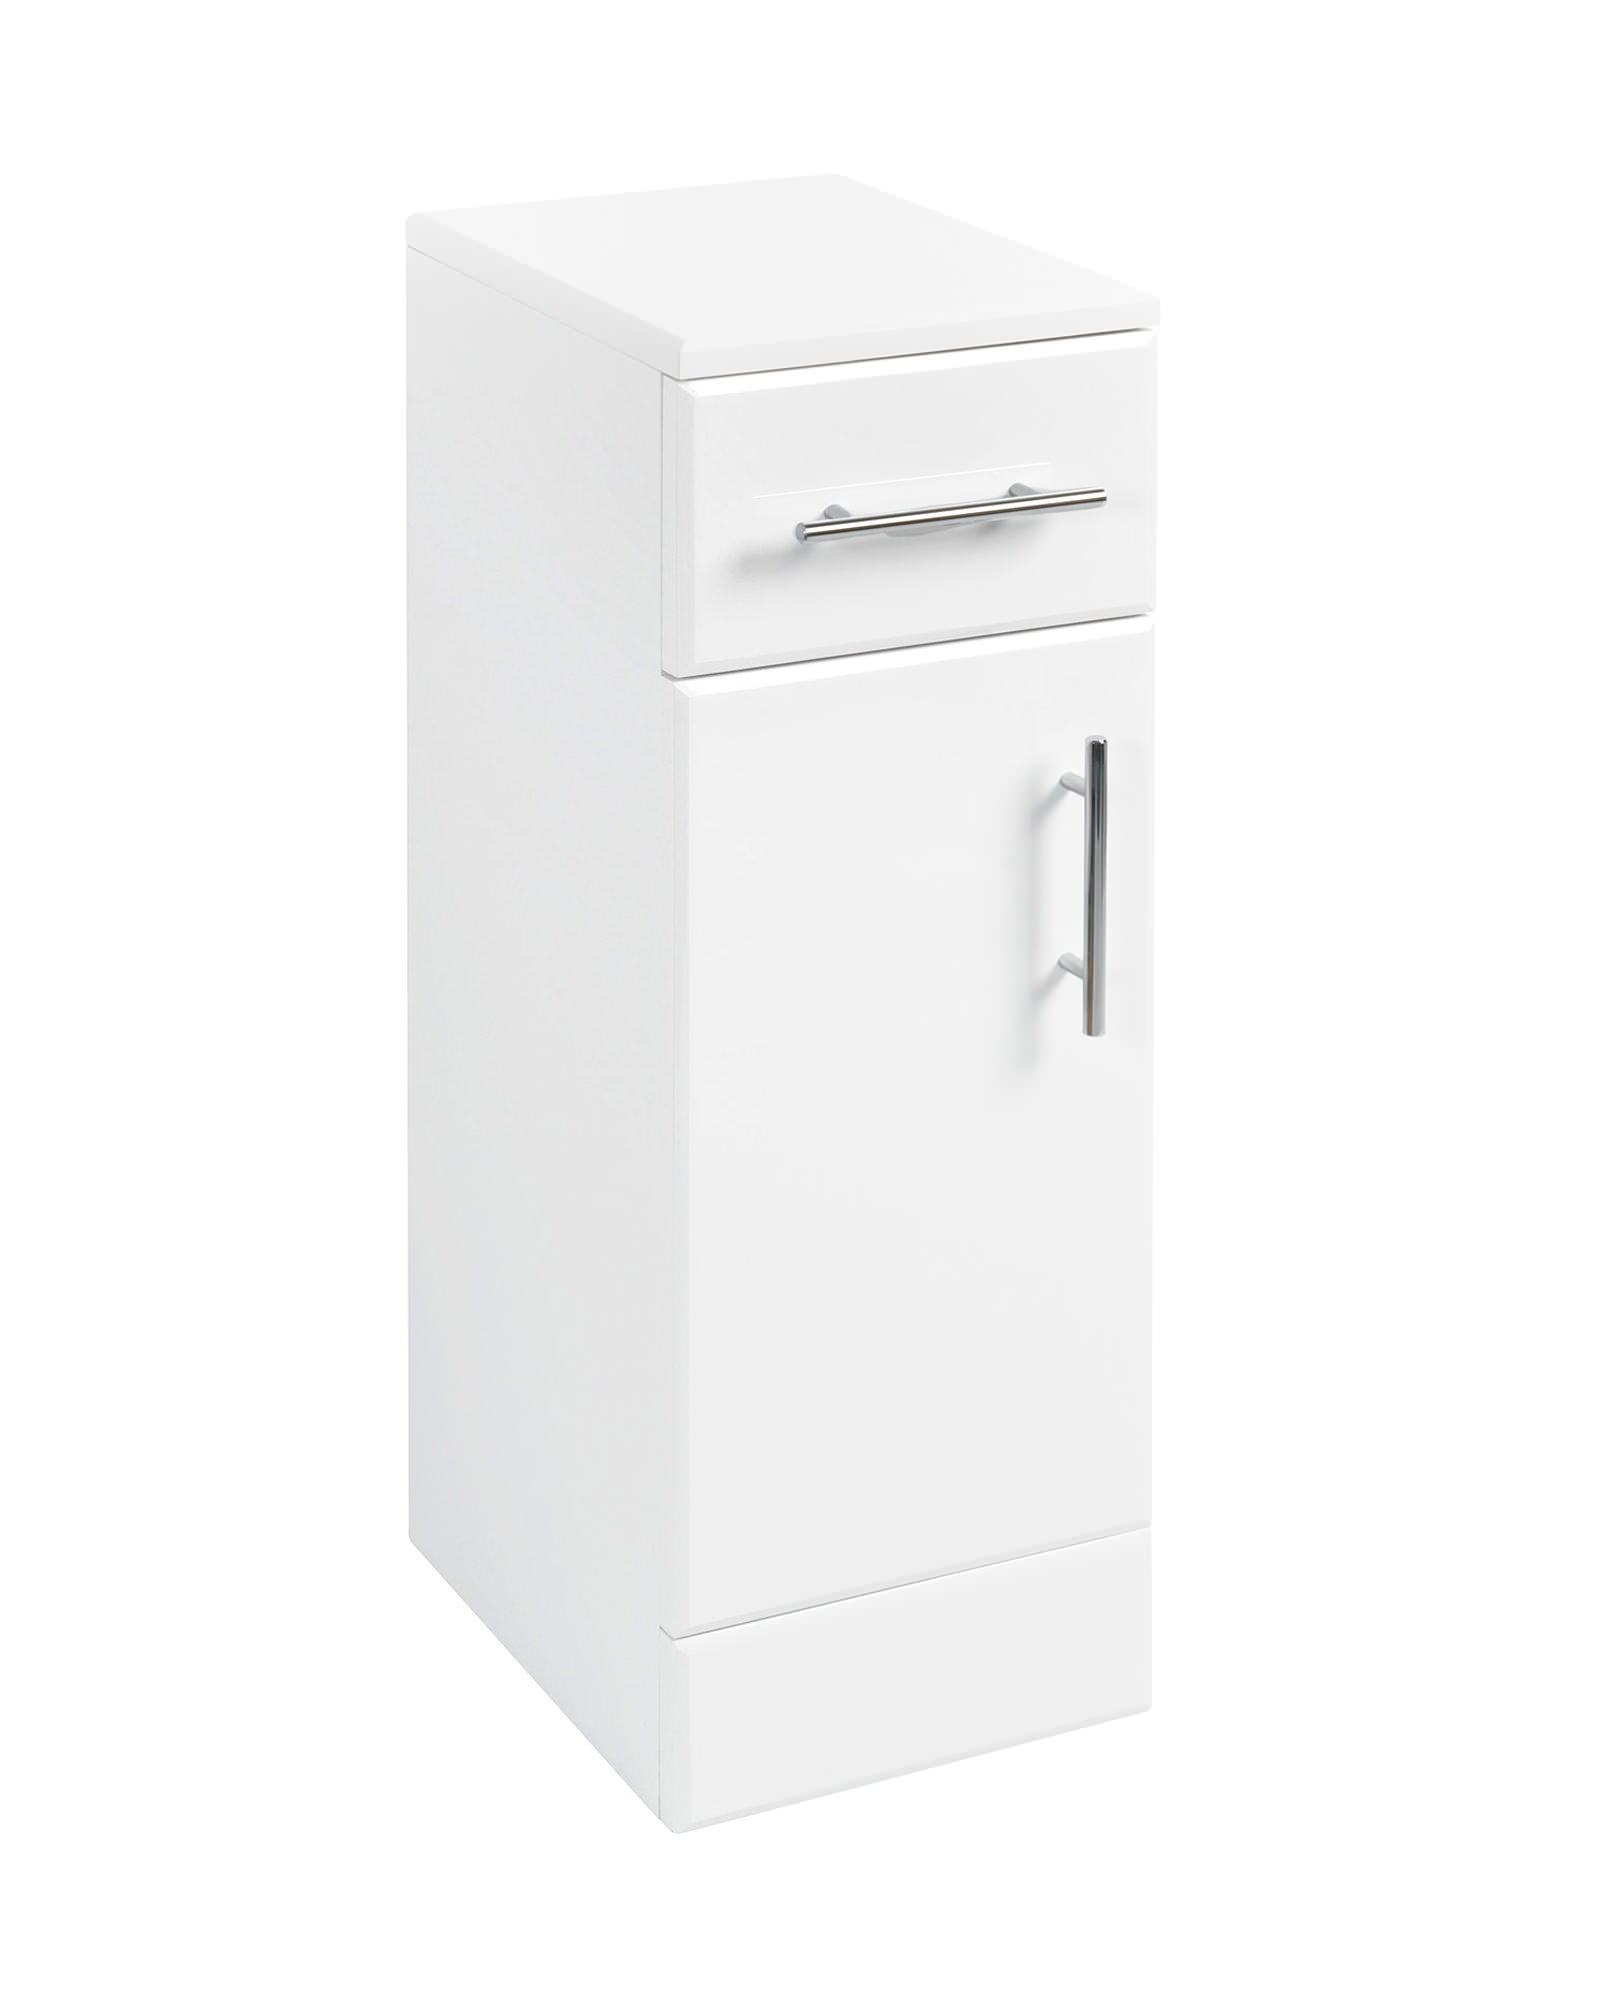 Tarragona White Floor Bathroom Cabinet : Bathroom floor cabinet white proman products